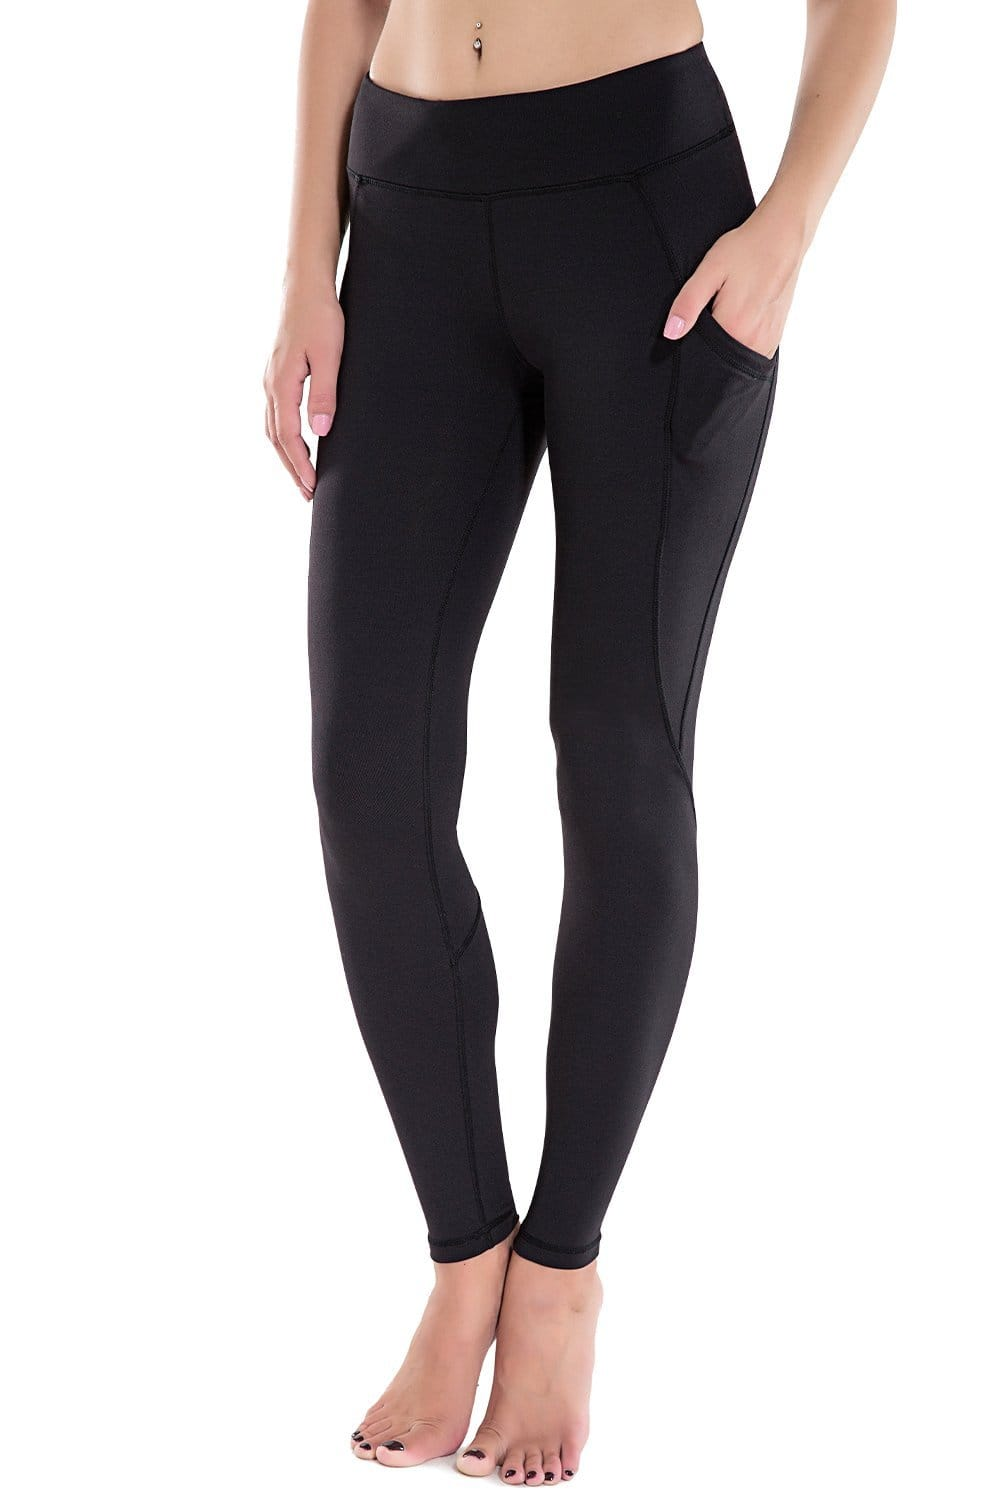 Women's Workout Leggings with Side Pockets Running Yoga Pants  $13 AC FS w/Amazon Prime